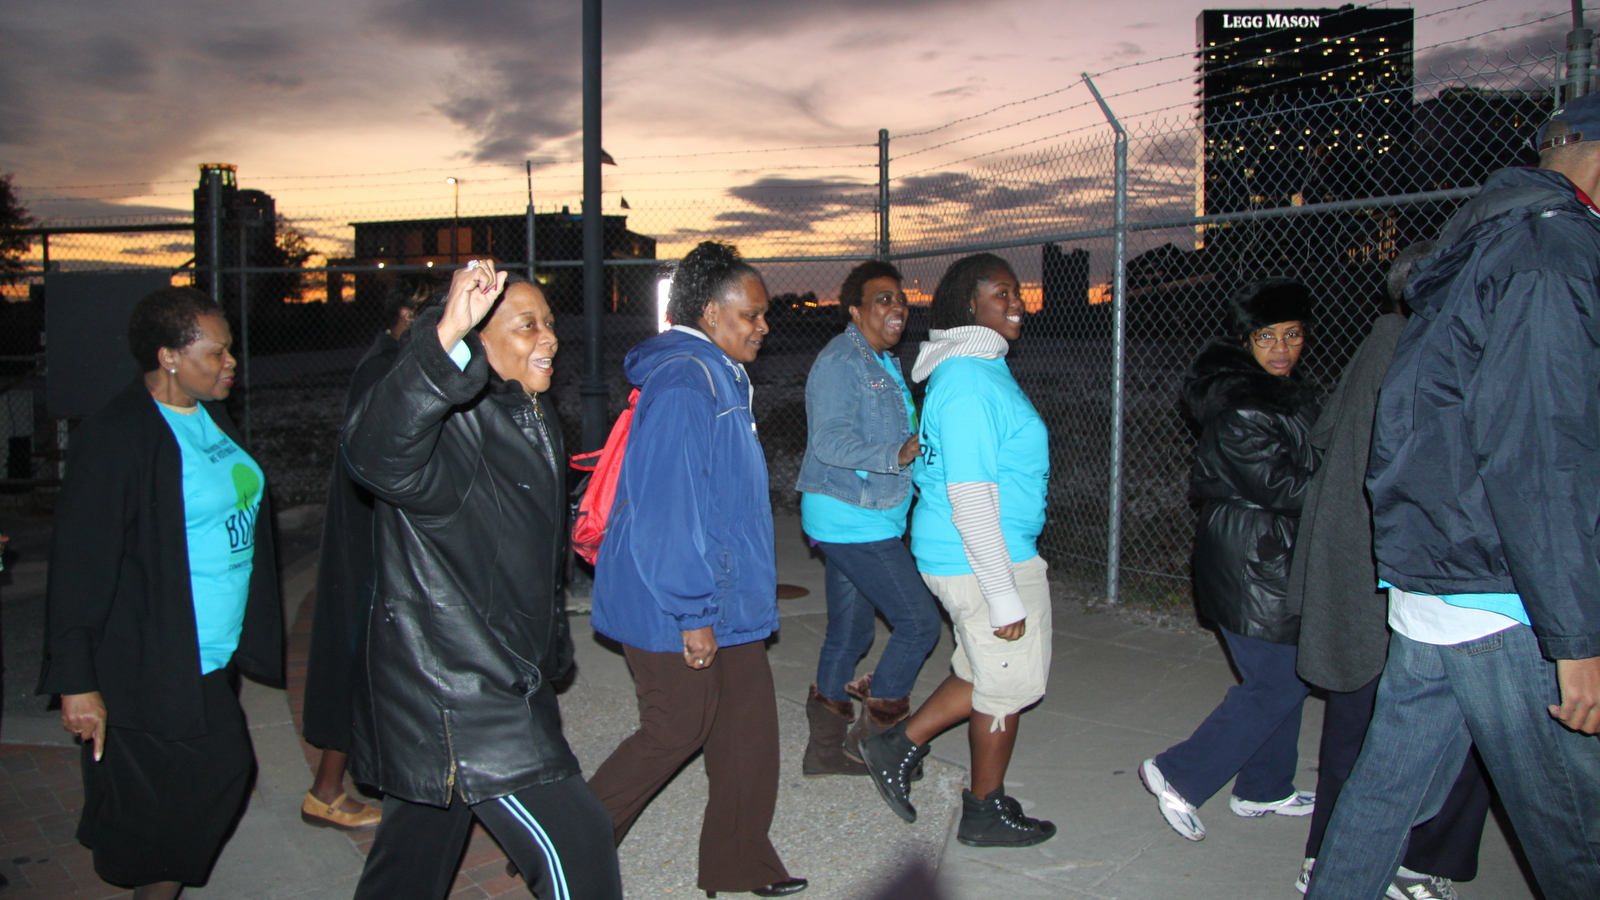 Members of BUILD (Baltimoreans United in Leadership Development) pass the future site of Harbor Point in 2011 on their way to protest city subsidies given to John Paterakis' upscale Harbor East development. (Fern Shen)